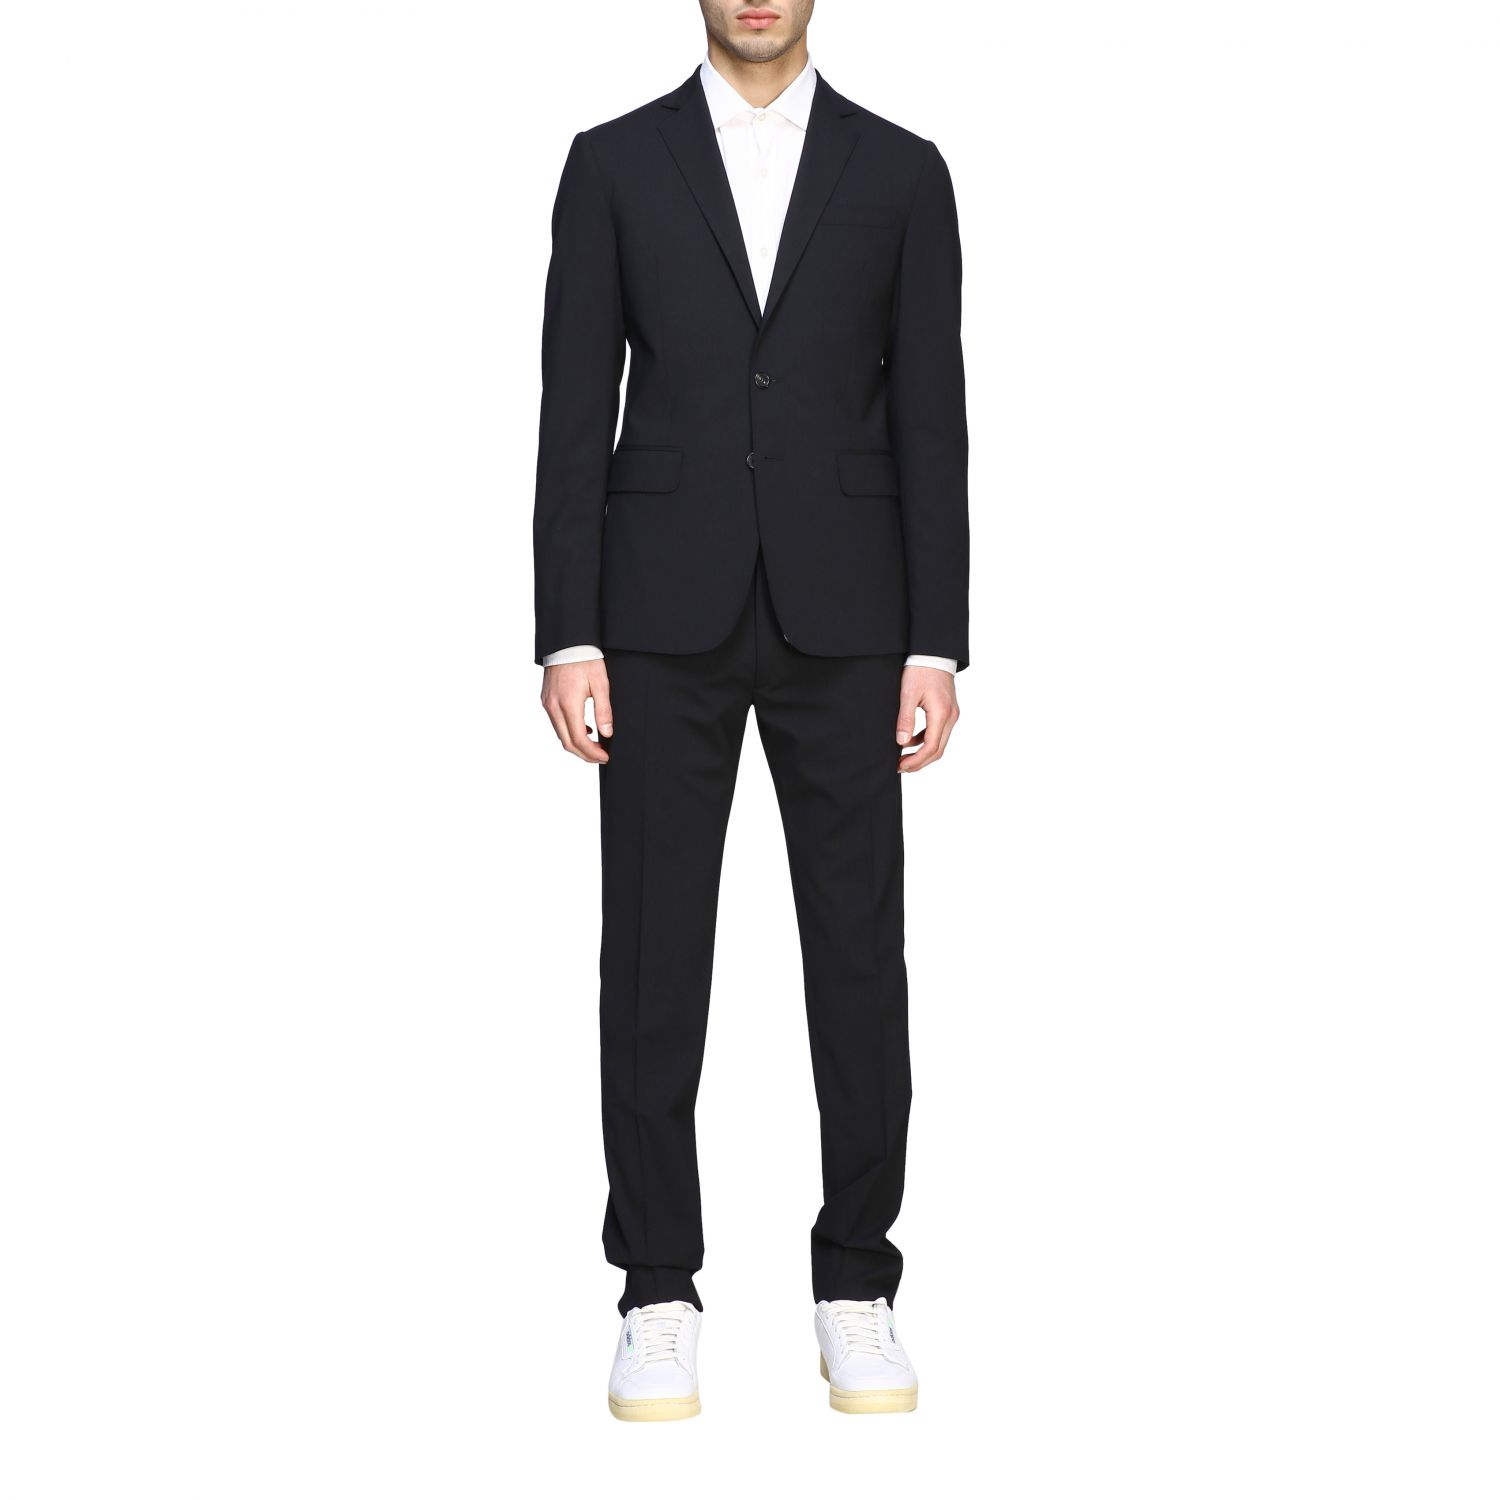 Suit Dsquared2: Dsquared2 suit in basic single-breasted virgin wool blend black 1